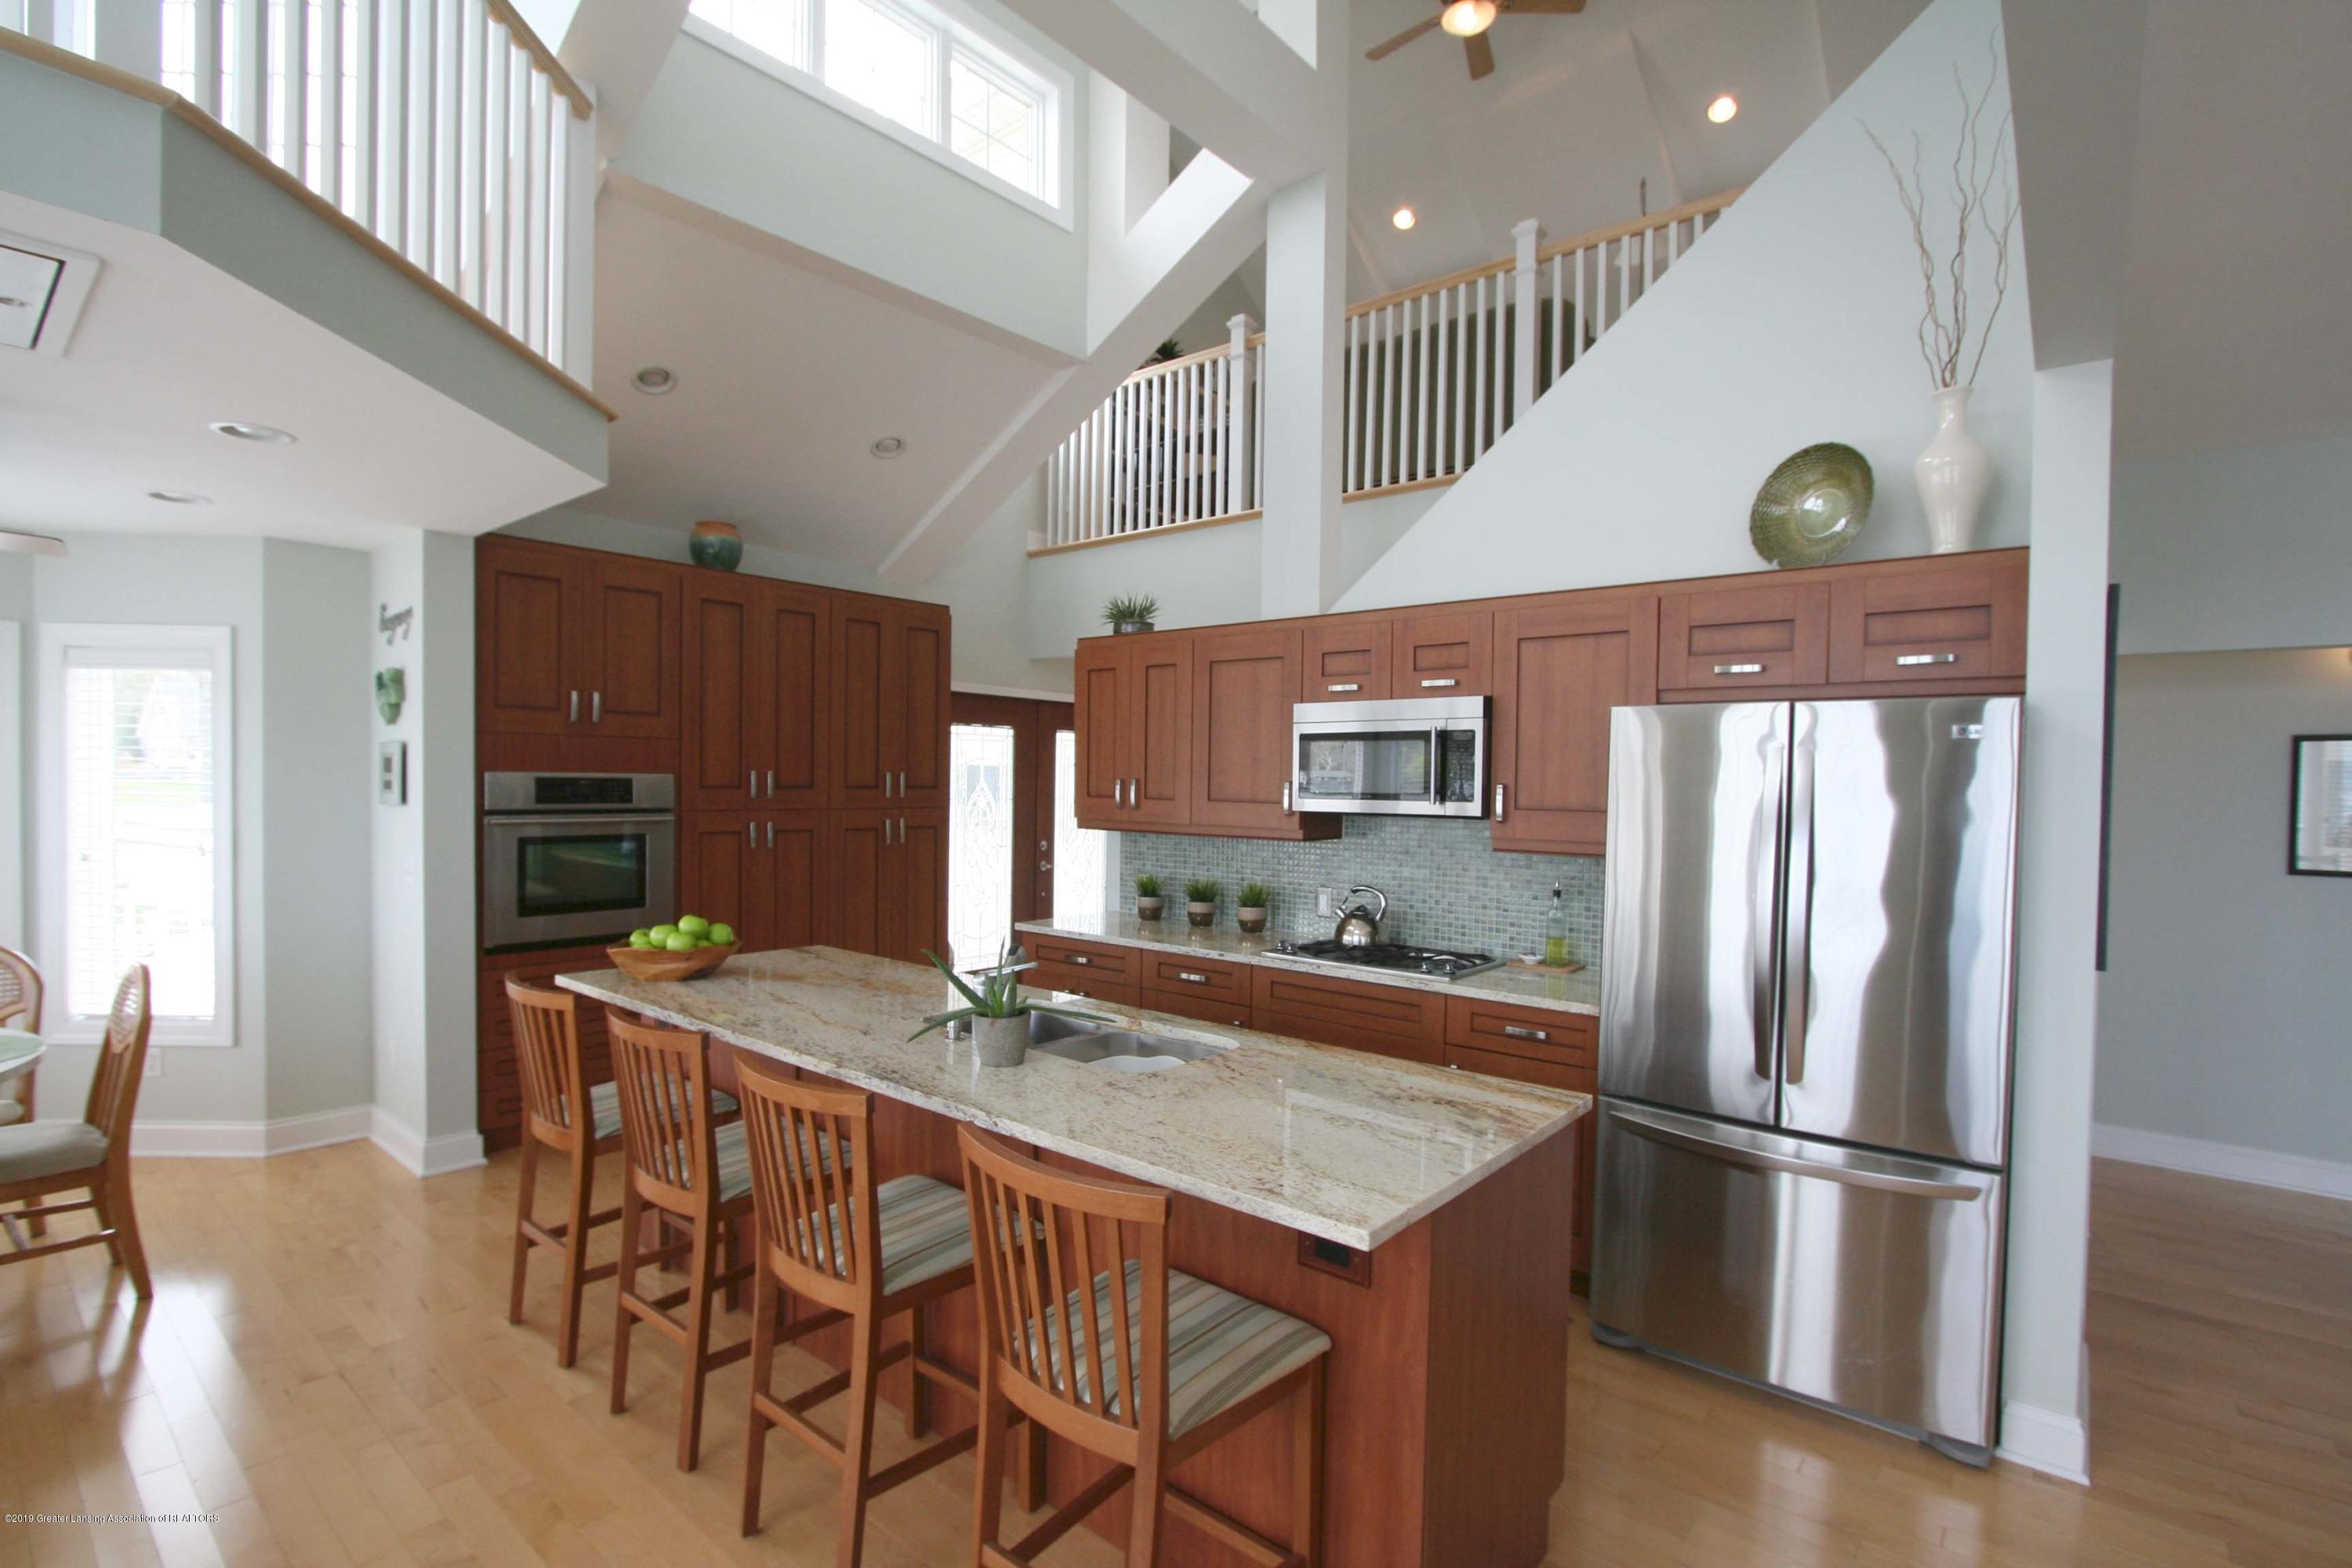 4271 Anderson Rd - 014 - 14